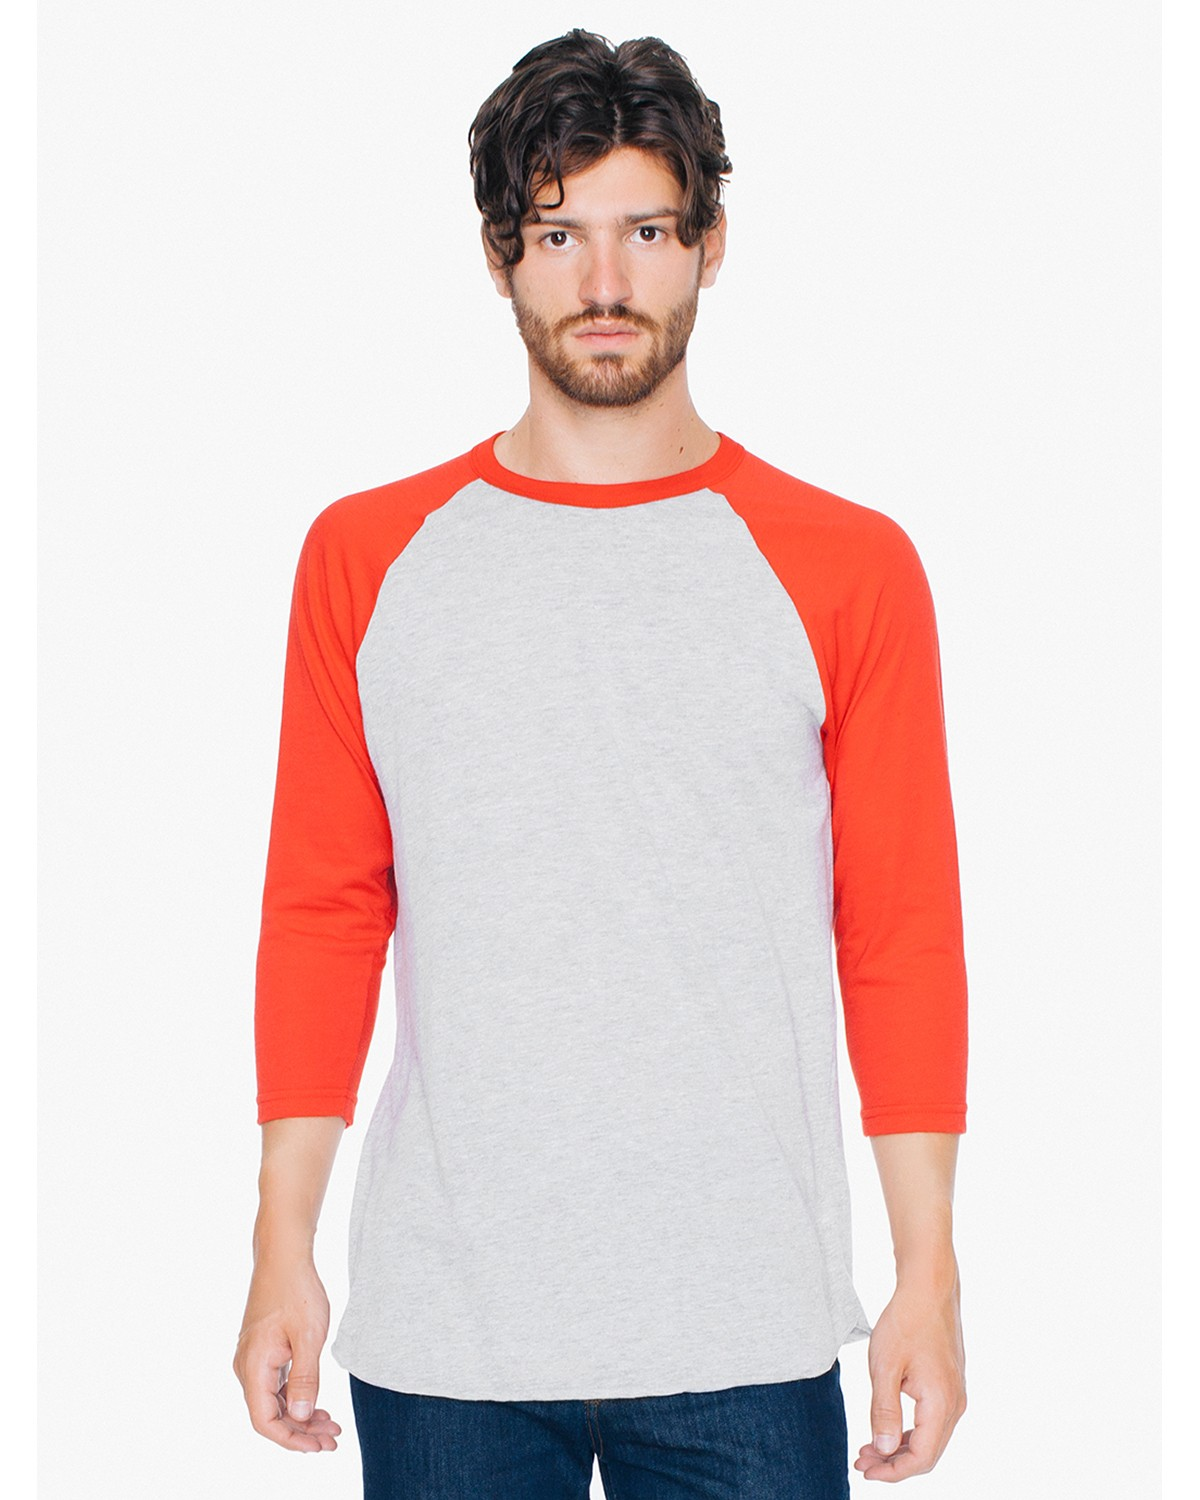 BB453W American Apparel HTHR GREY/RED